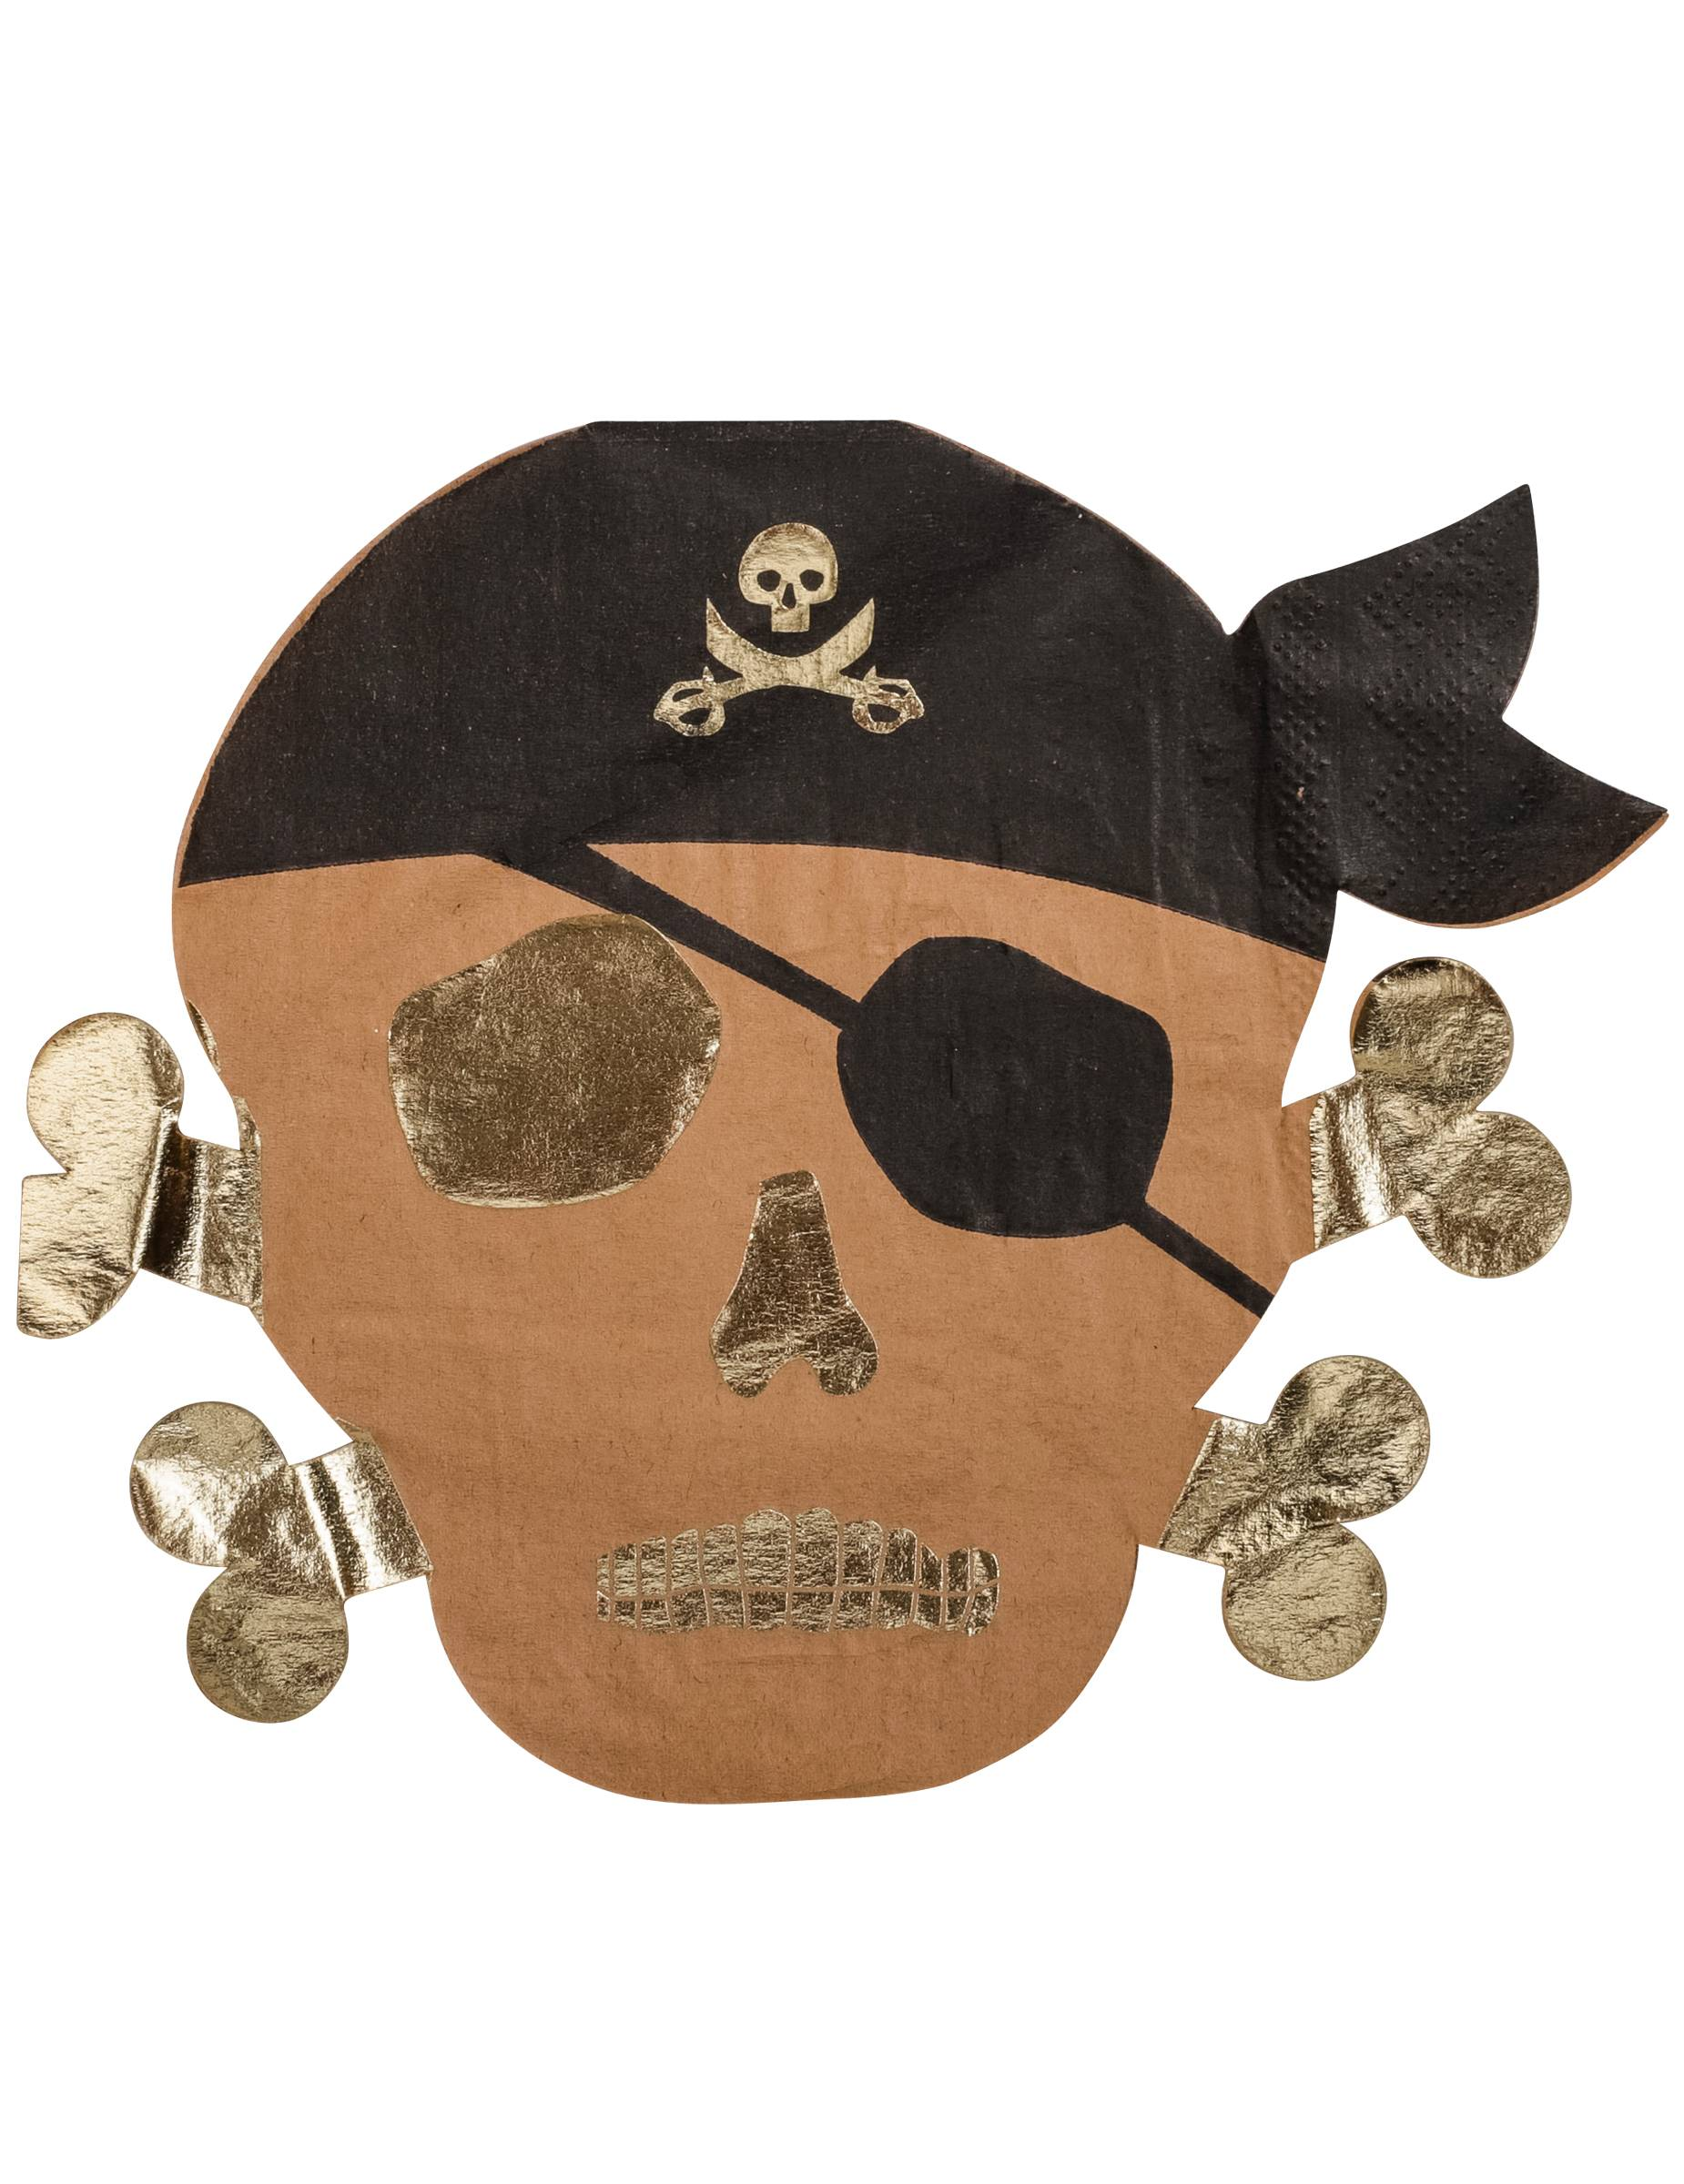 VegaooParty 16 Serviettes en papier Pirate kraft et dorure 33 x 33 cm